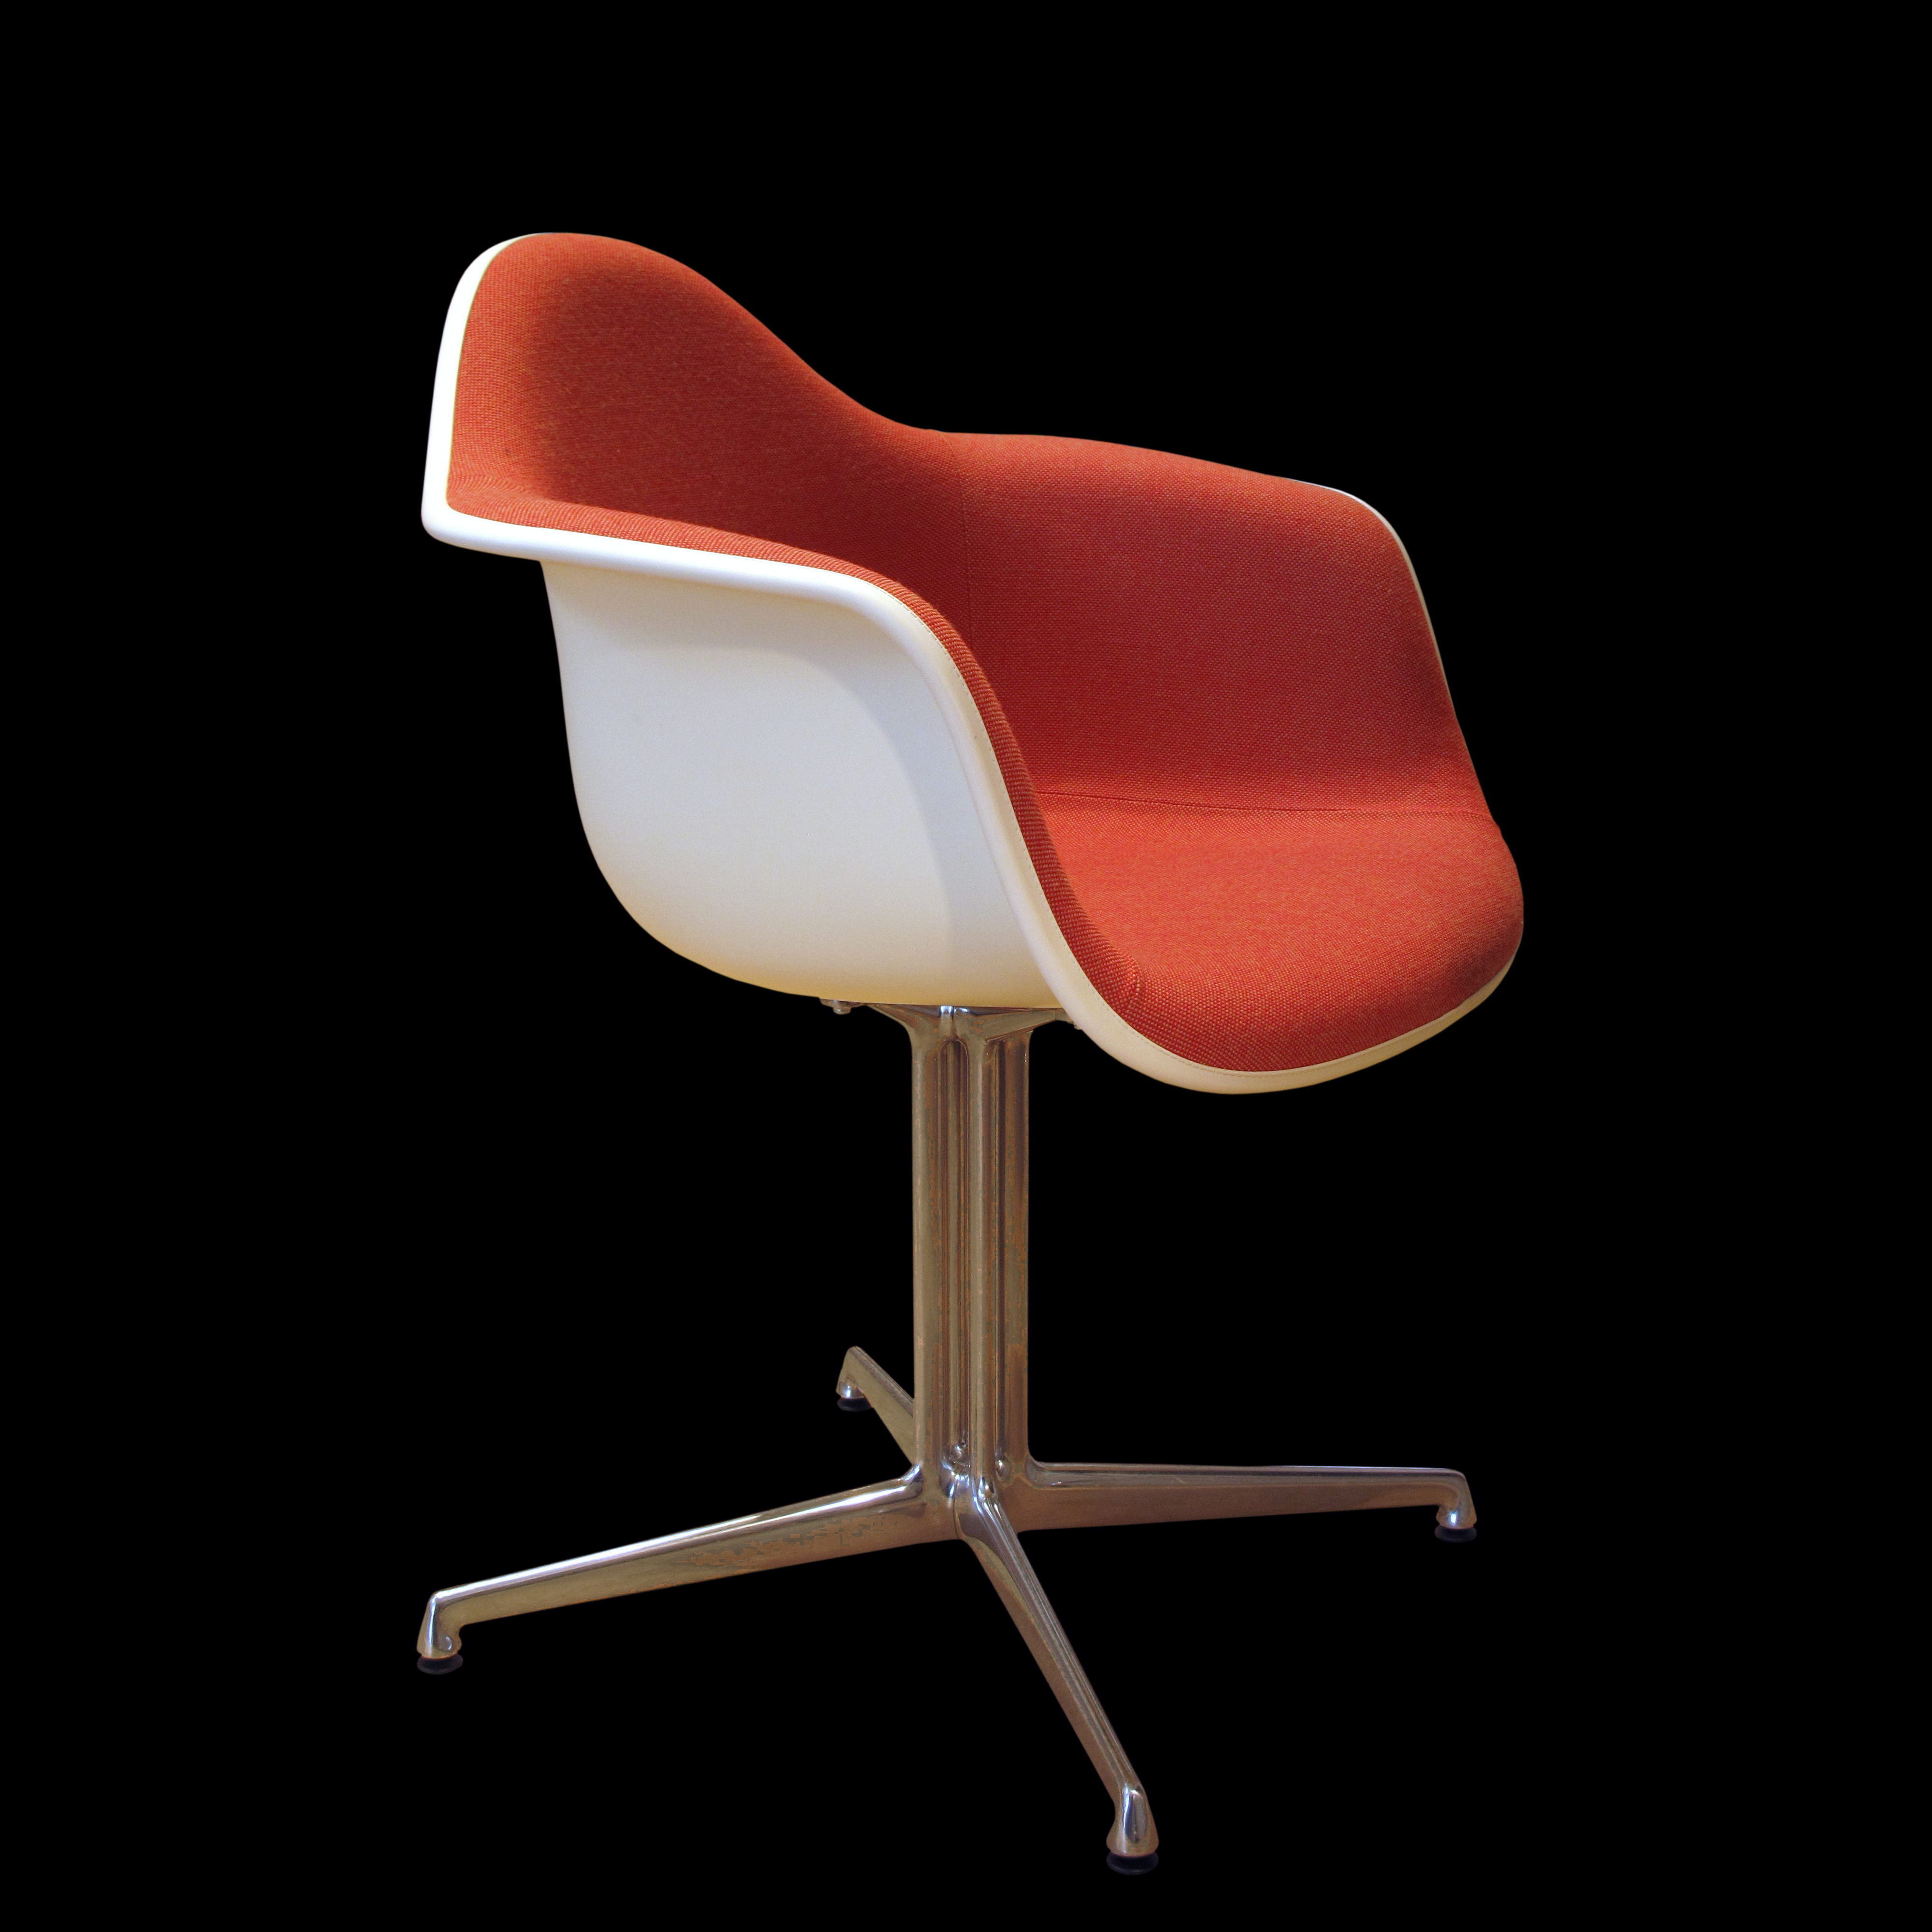 Eames Fiberglass Armchair – Wikipedia Intended For Plastic Arm Chairs With Rocking Legs (View 18 of 20)